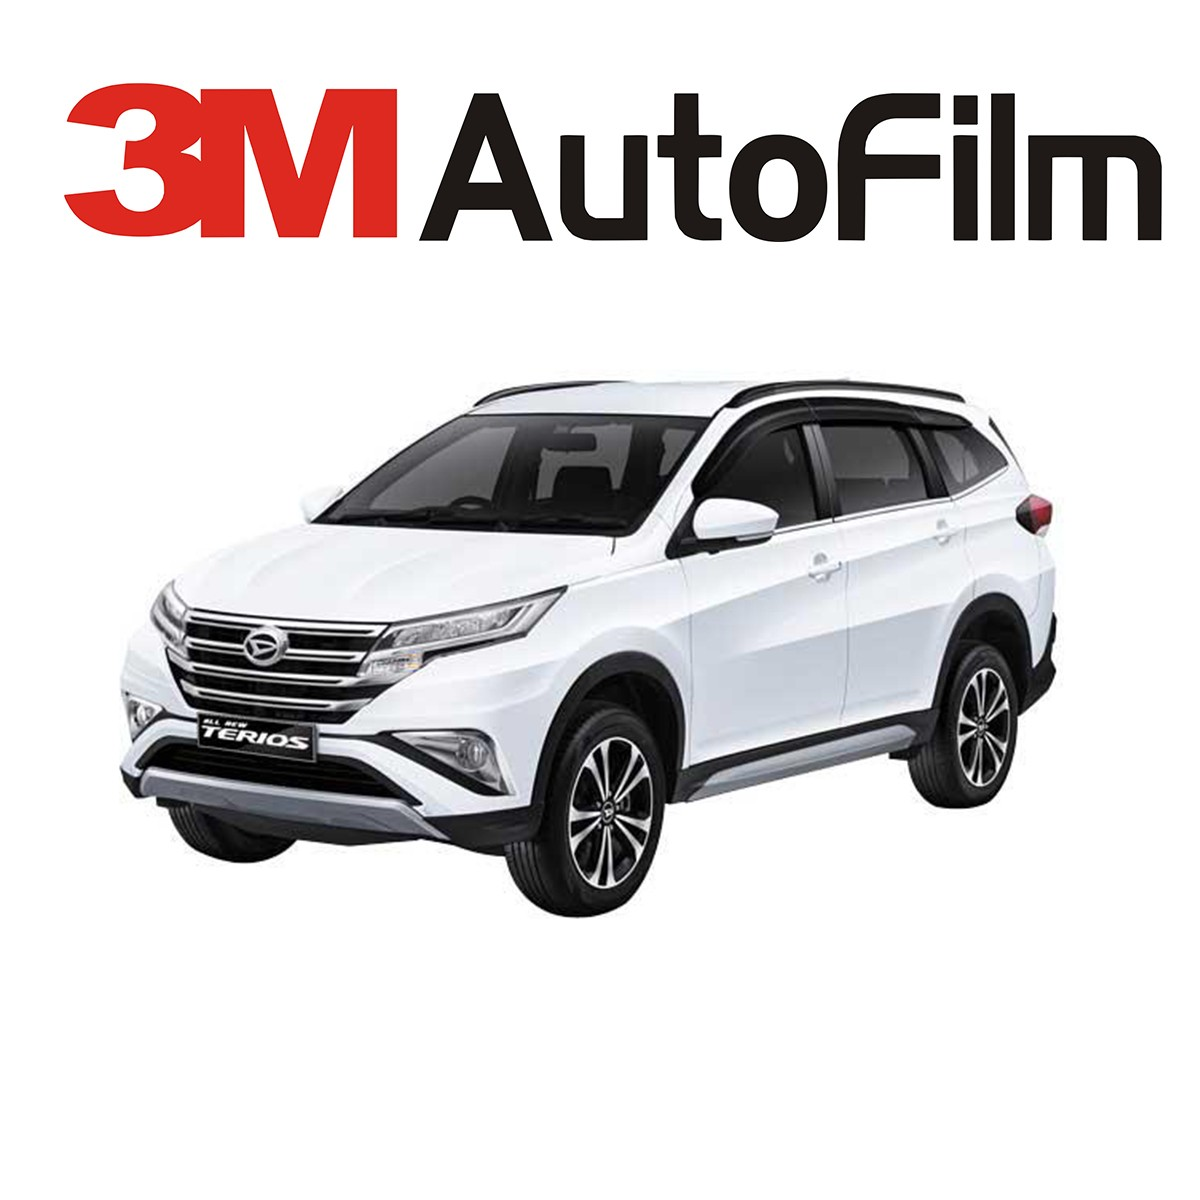 KACA FILM 3M BLACK BEAUTY - (DAIHATSU ALL NEW TERIOS) KACA SAMPING BELAKANG